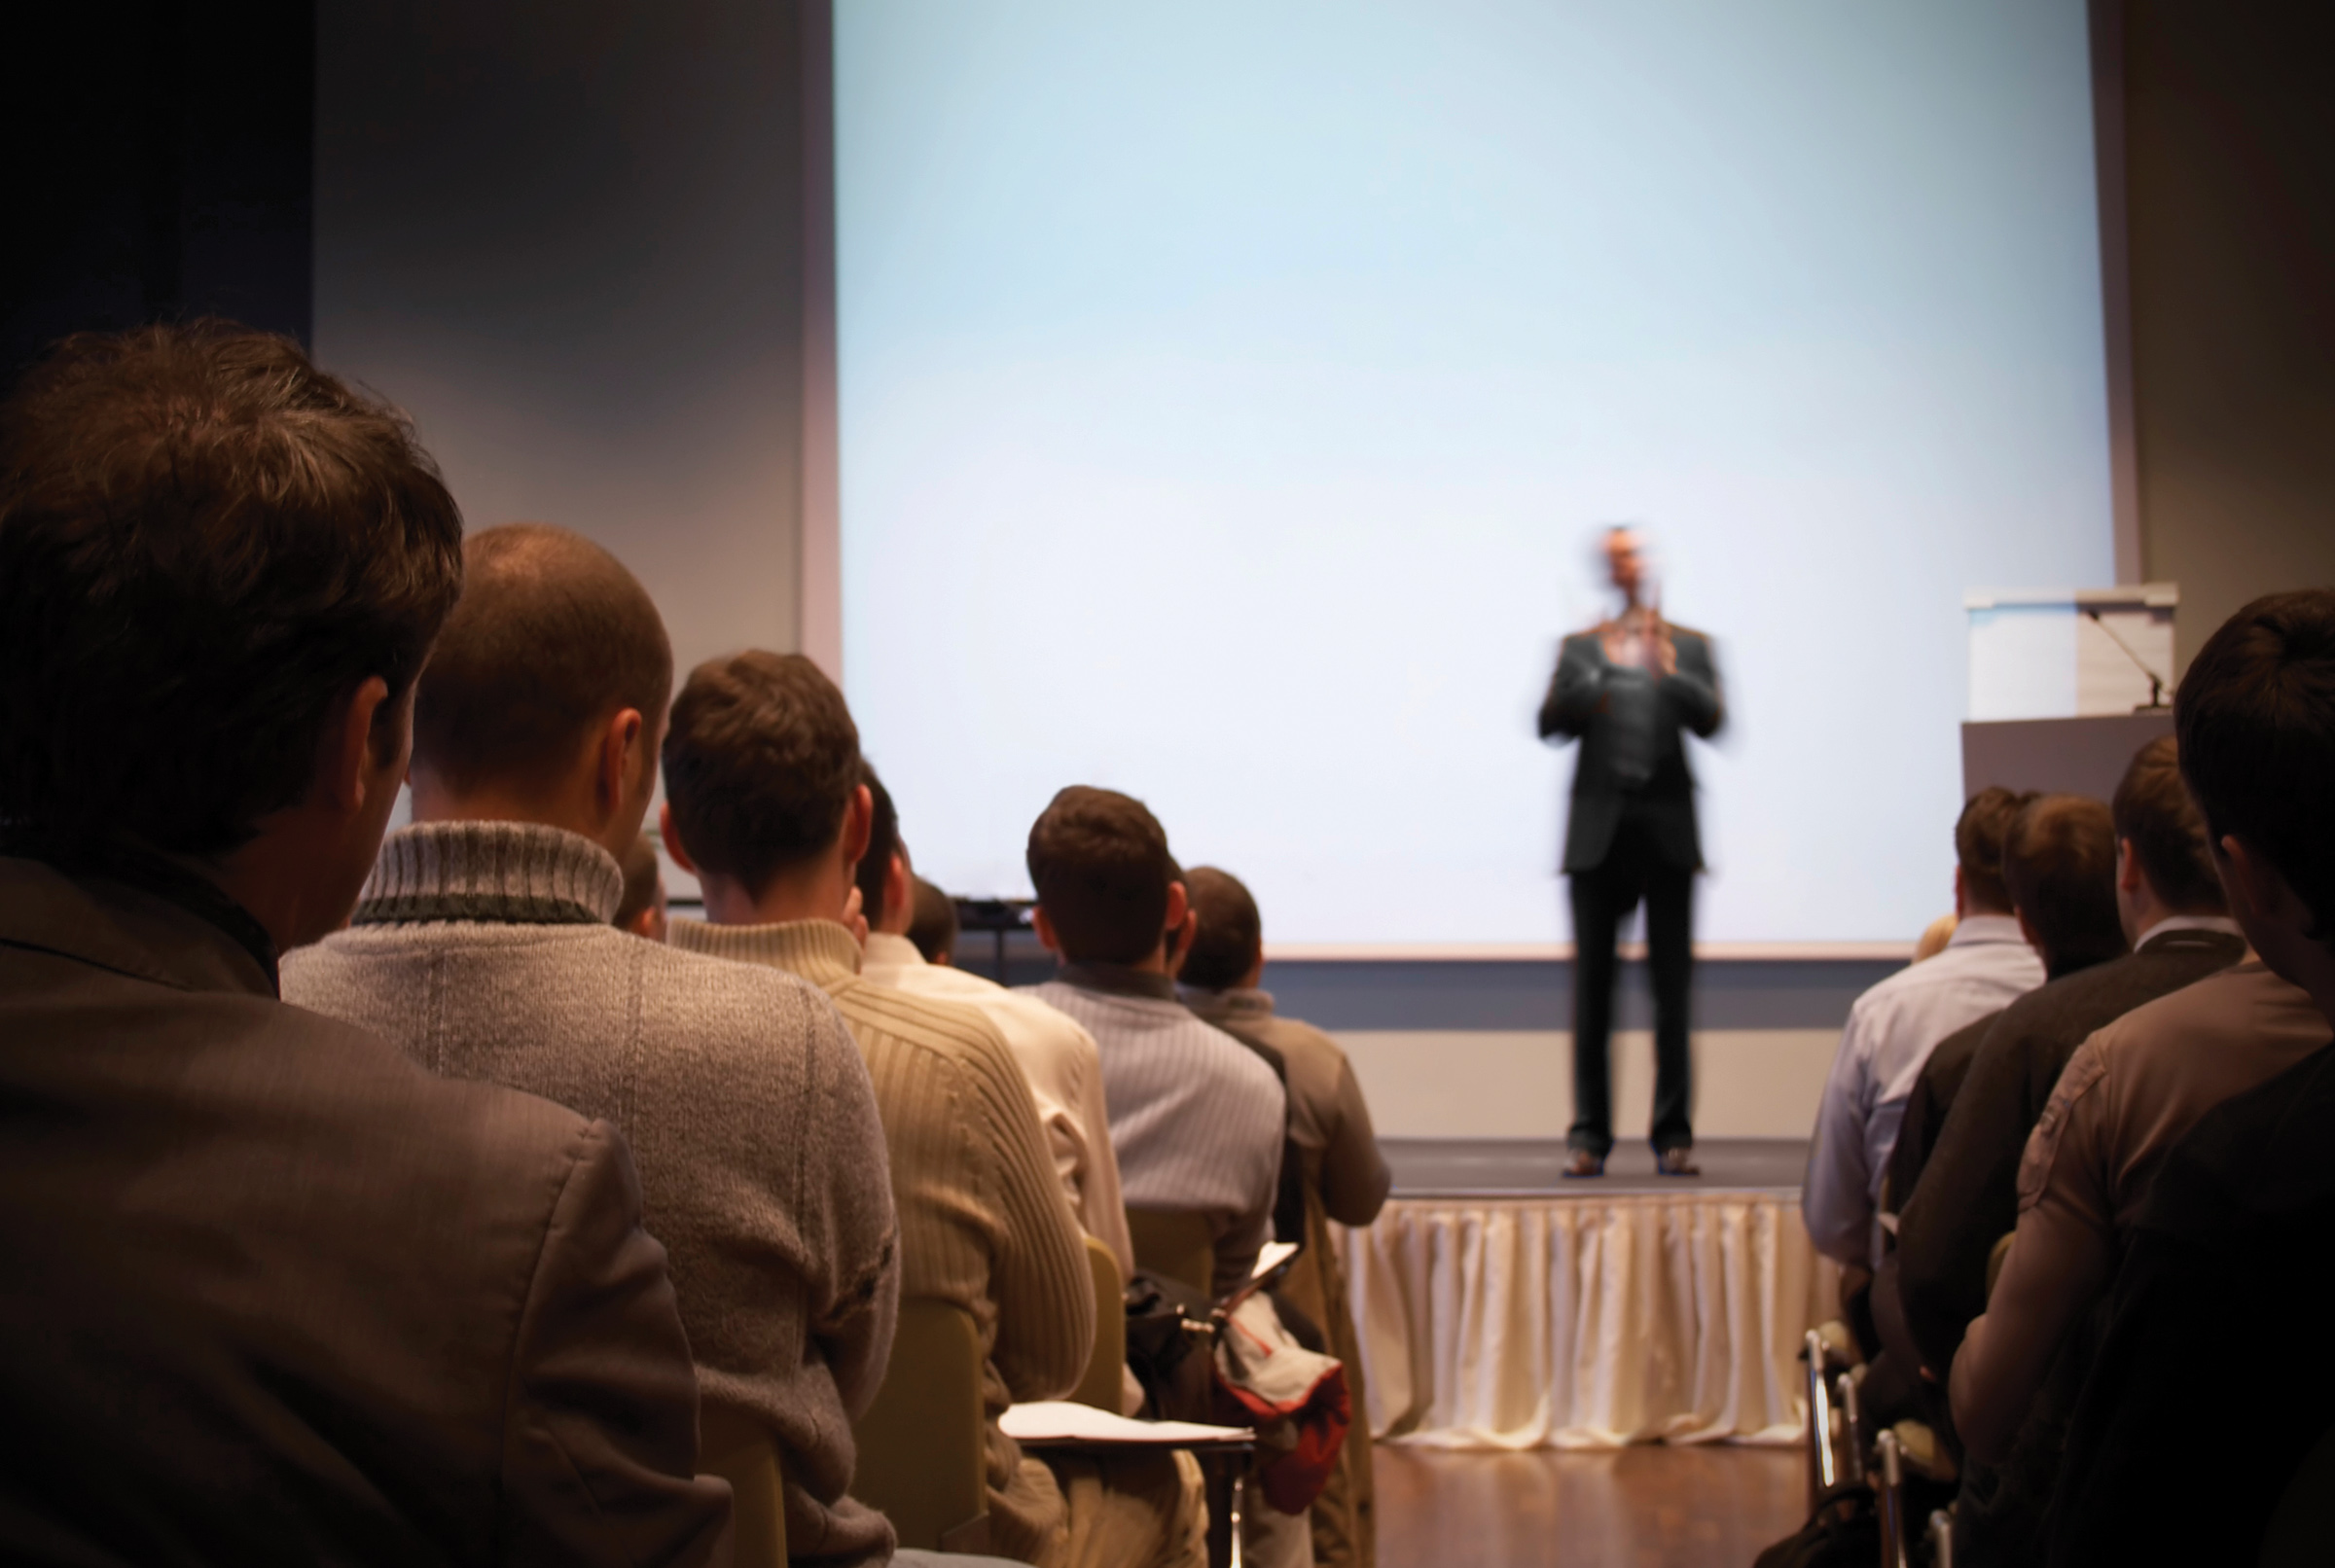 success story - professional speaker inspiring his audience, standing on stage, with screen in the background